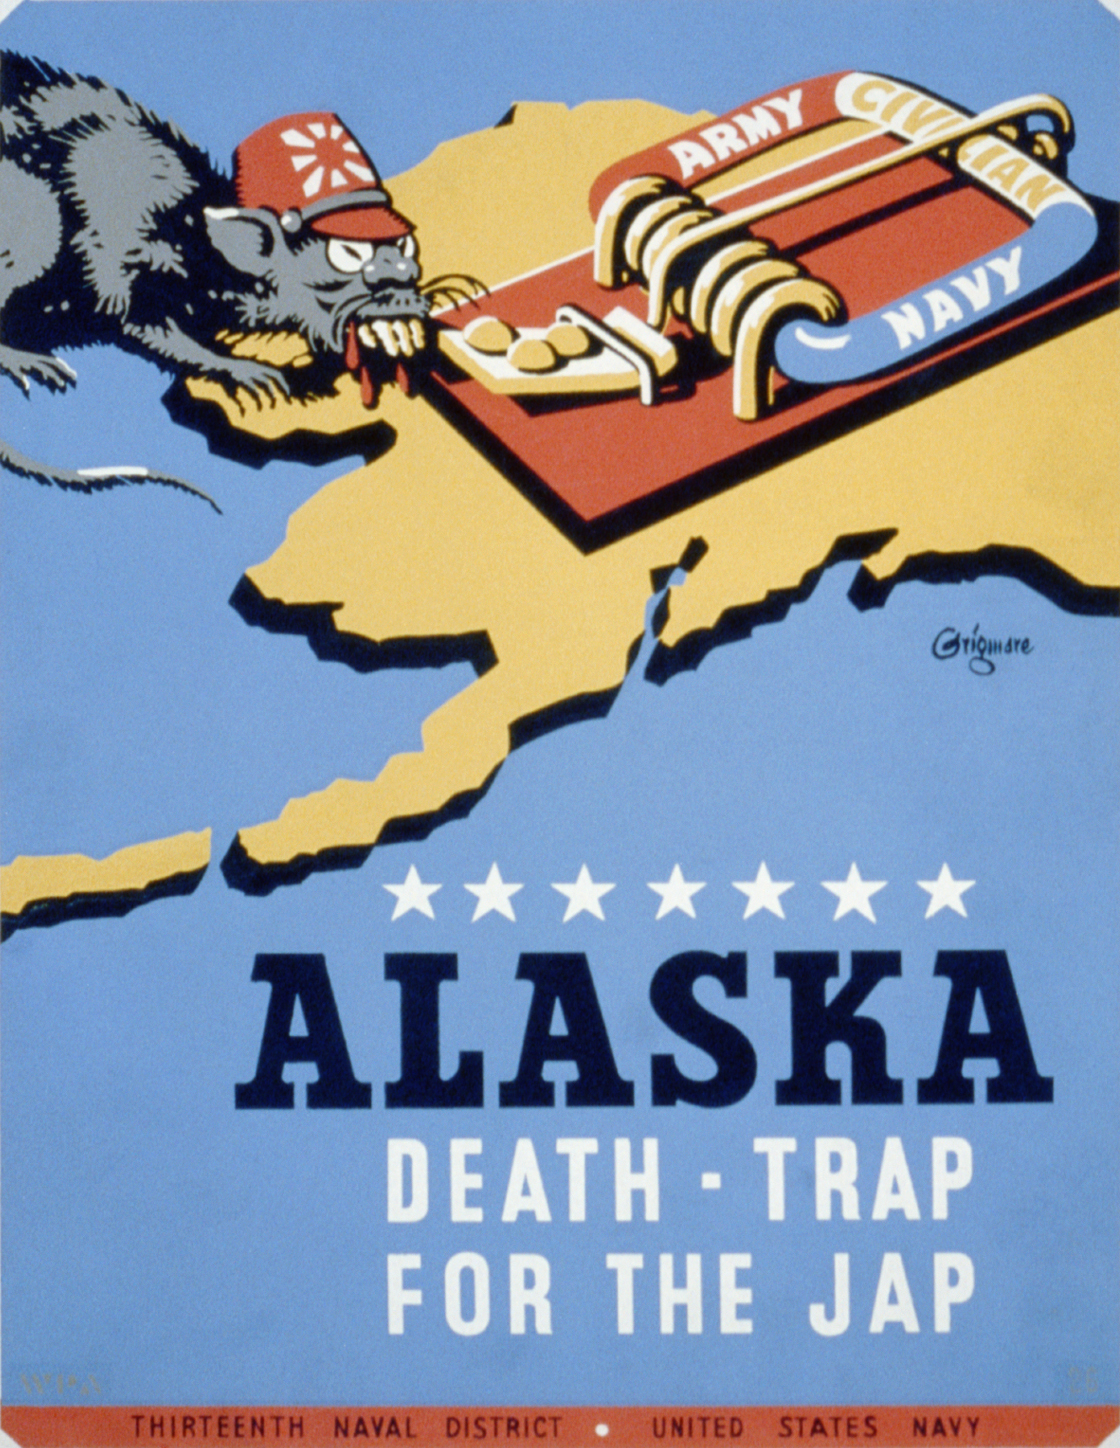 US military propaganda poster from 1942/43 for Thirteenth Naval District, United States Navy, showing a rat with stereotypical attire representing Japan, approaching a mousetrap labeled